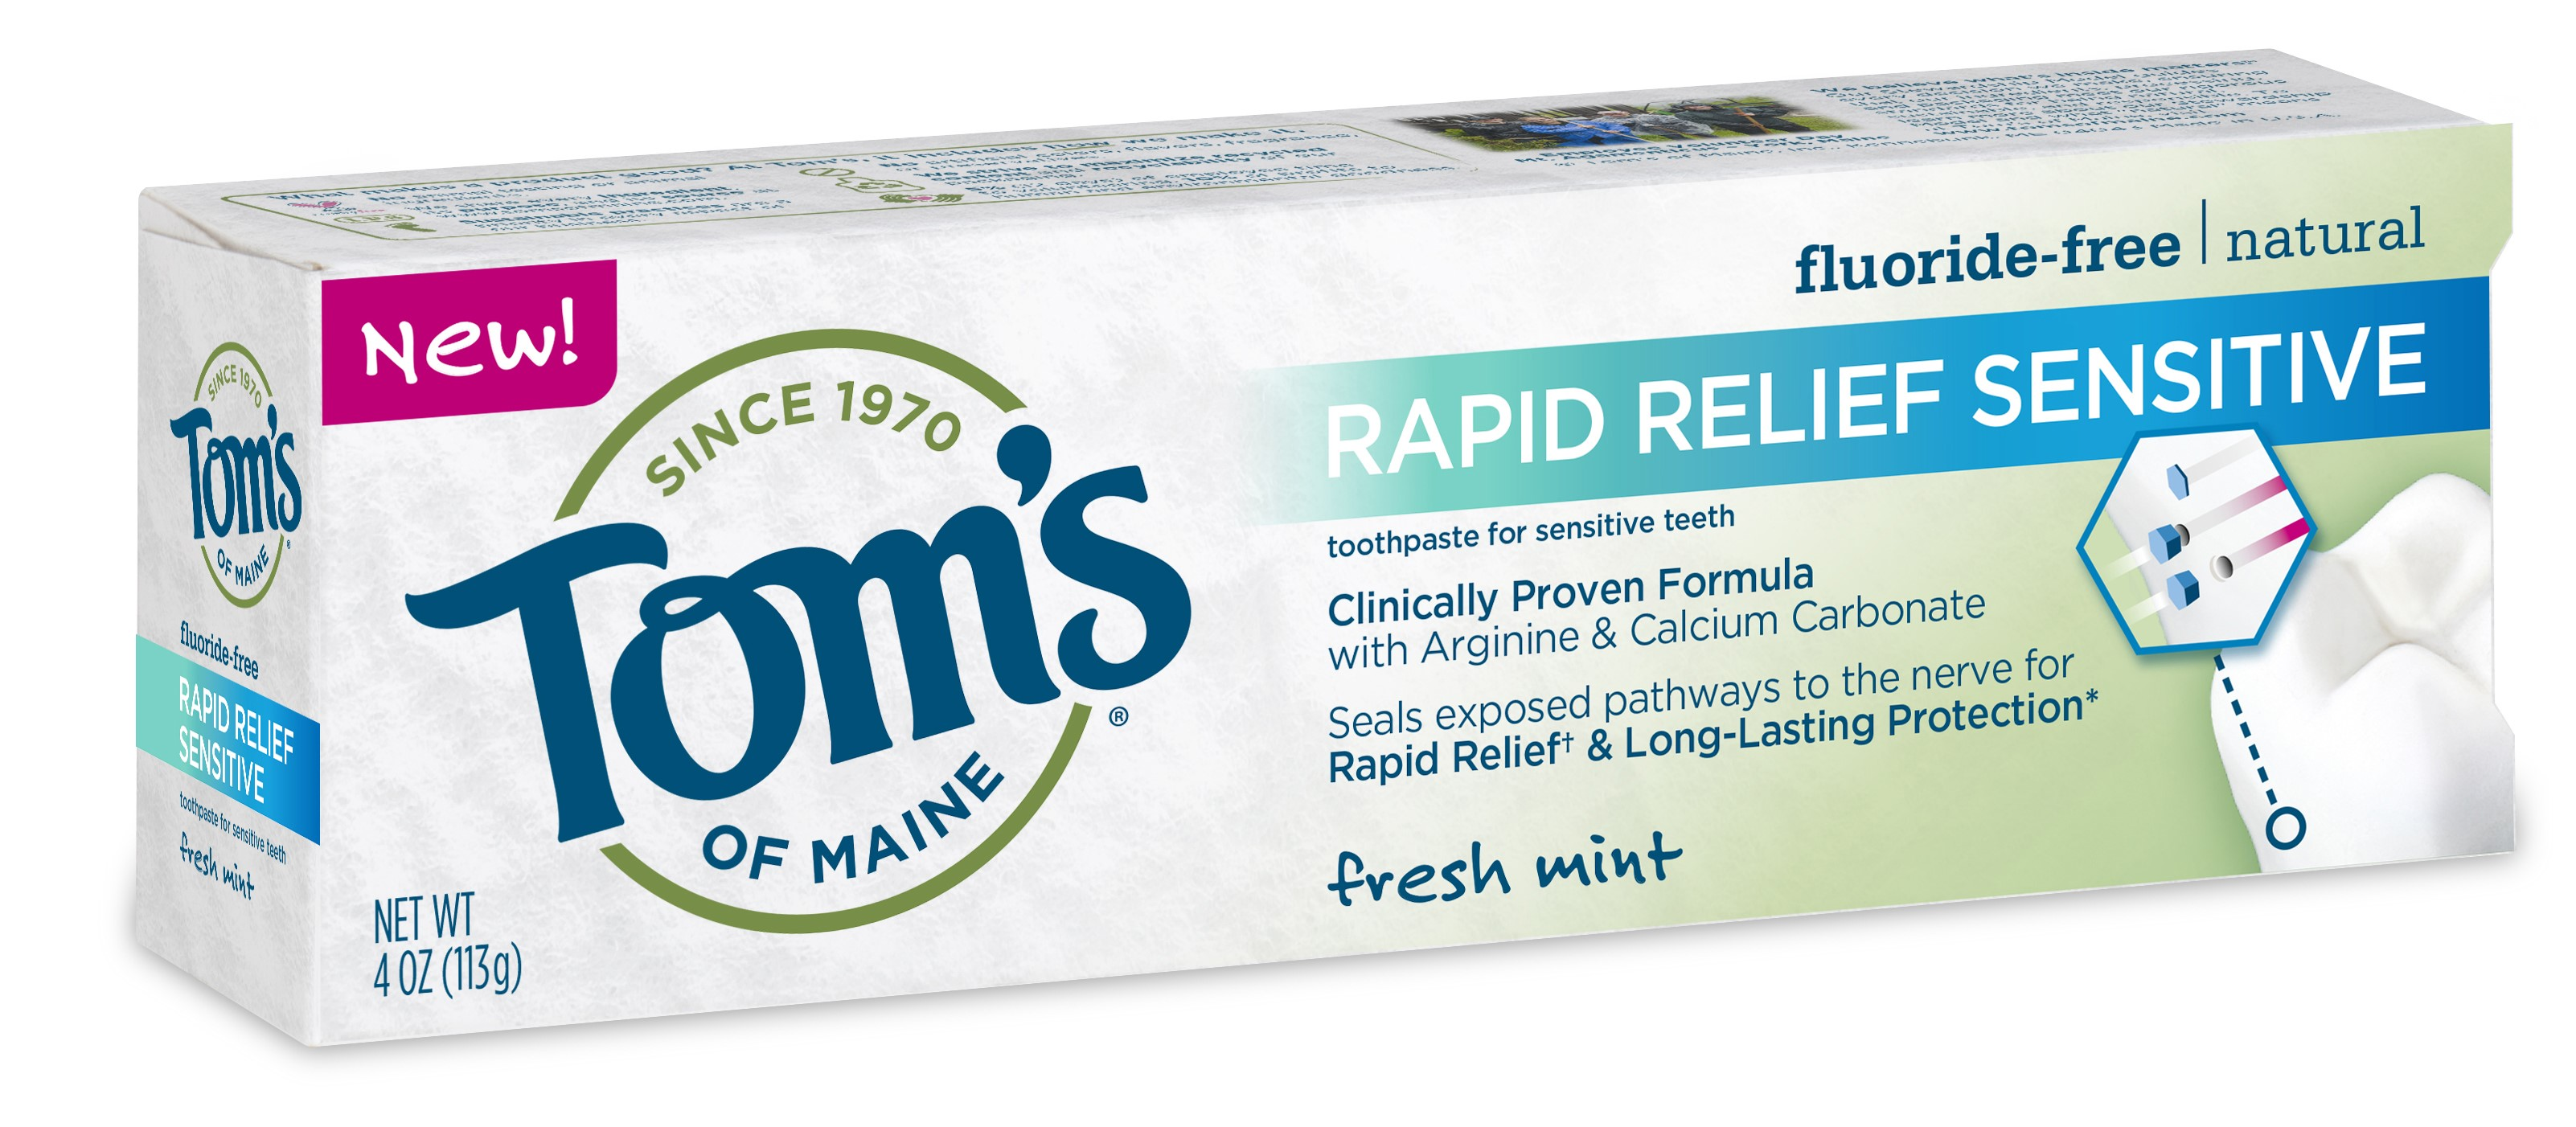 Toms of Maine Rapid Relief Fluoride Free Sensitive Toothpaste